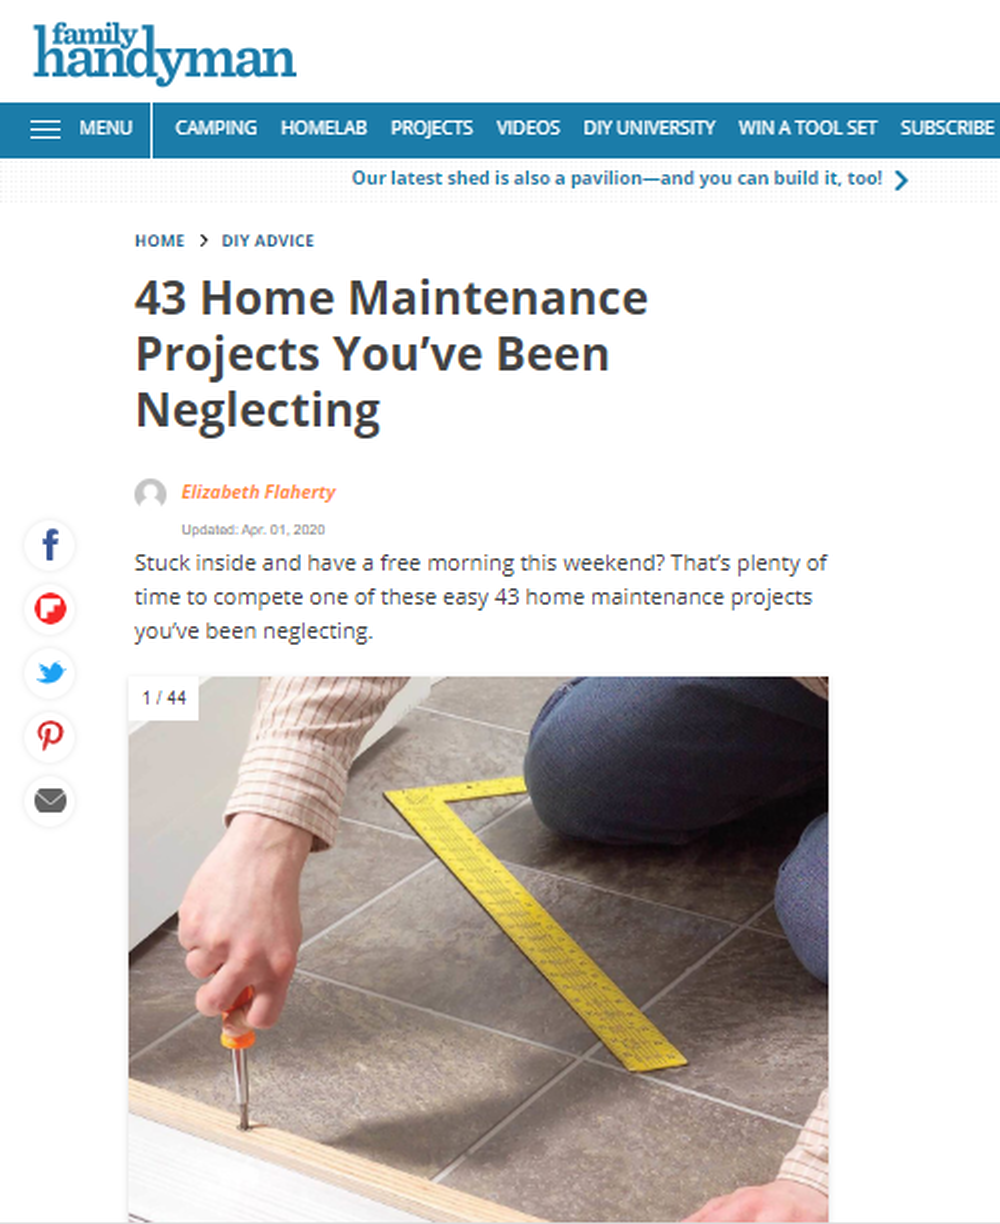 43_Home_Maintenance_Projects_You've_Been_Neglecting_Family_Handyman.png